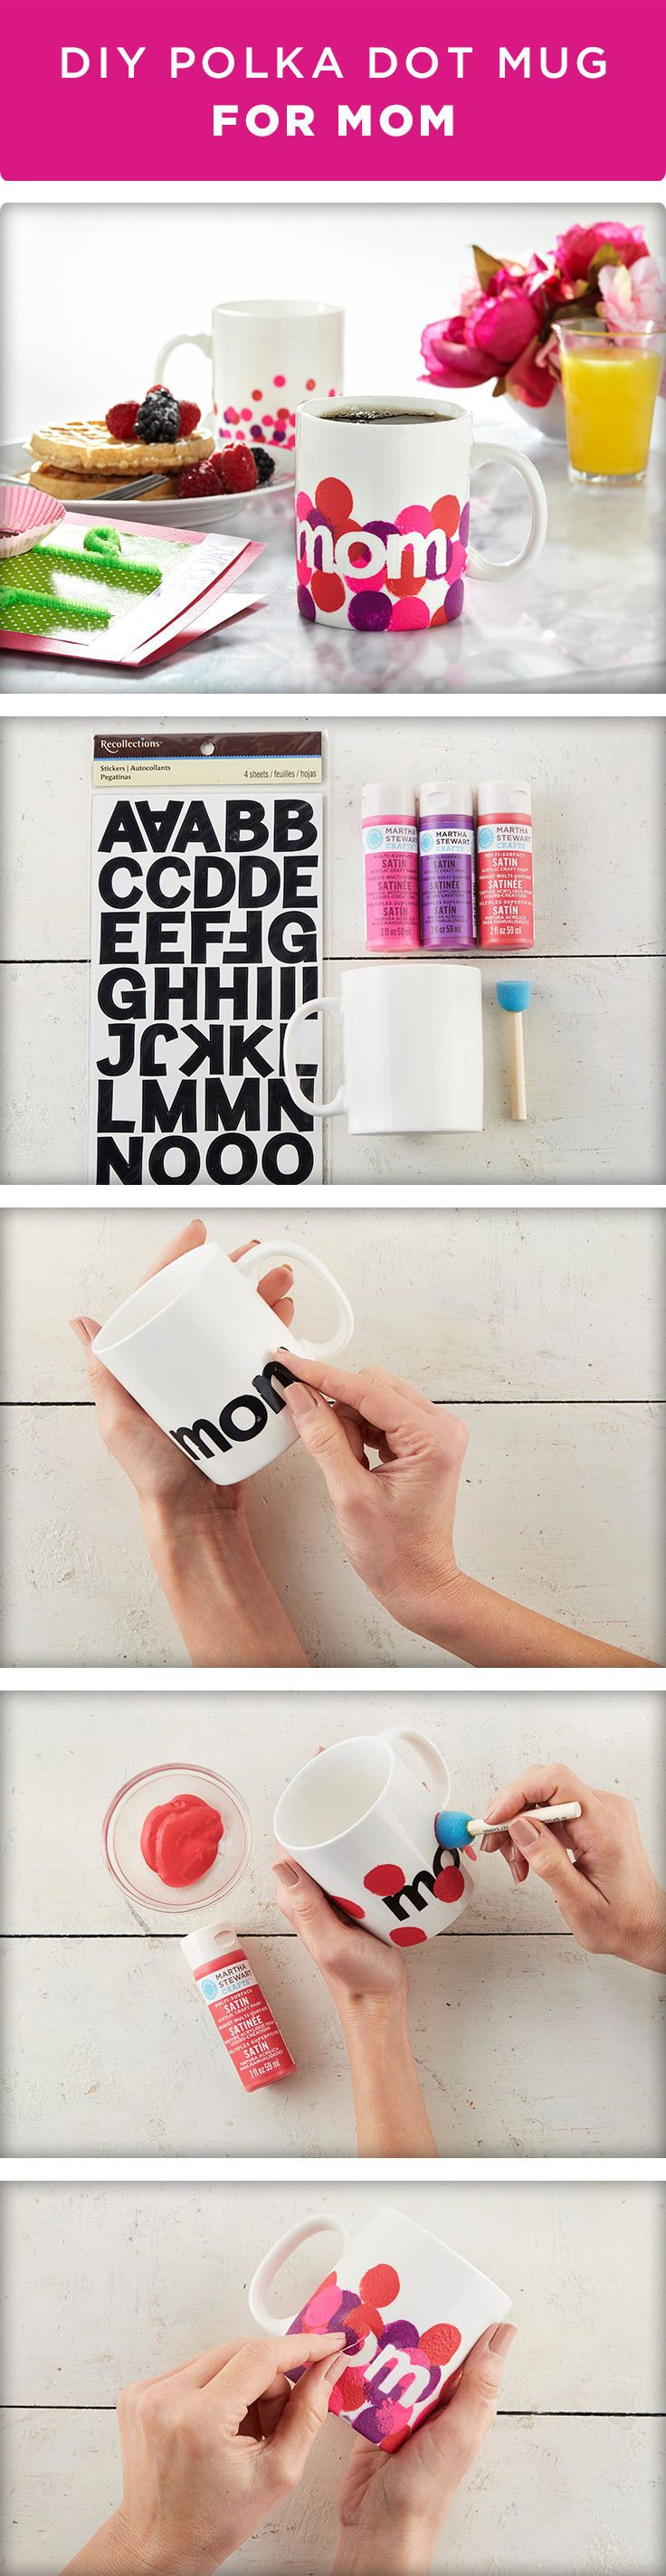 Make Mom the perfect mug for Mother's Day in just a few simple steps! Wash and dry your mug to remove any dust or film. Next, adhere alphabet stickers to spell out M-O-M. Using a spouncer, paint polka dots of various colors all over the mug being careful to avoid the area that touches the lips. While the paint is still wet, remove your stickers. Be sure to cure your mug in the oven before using. For full instructions and all of the materials you need to create this project, visit…